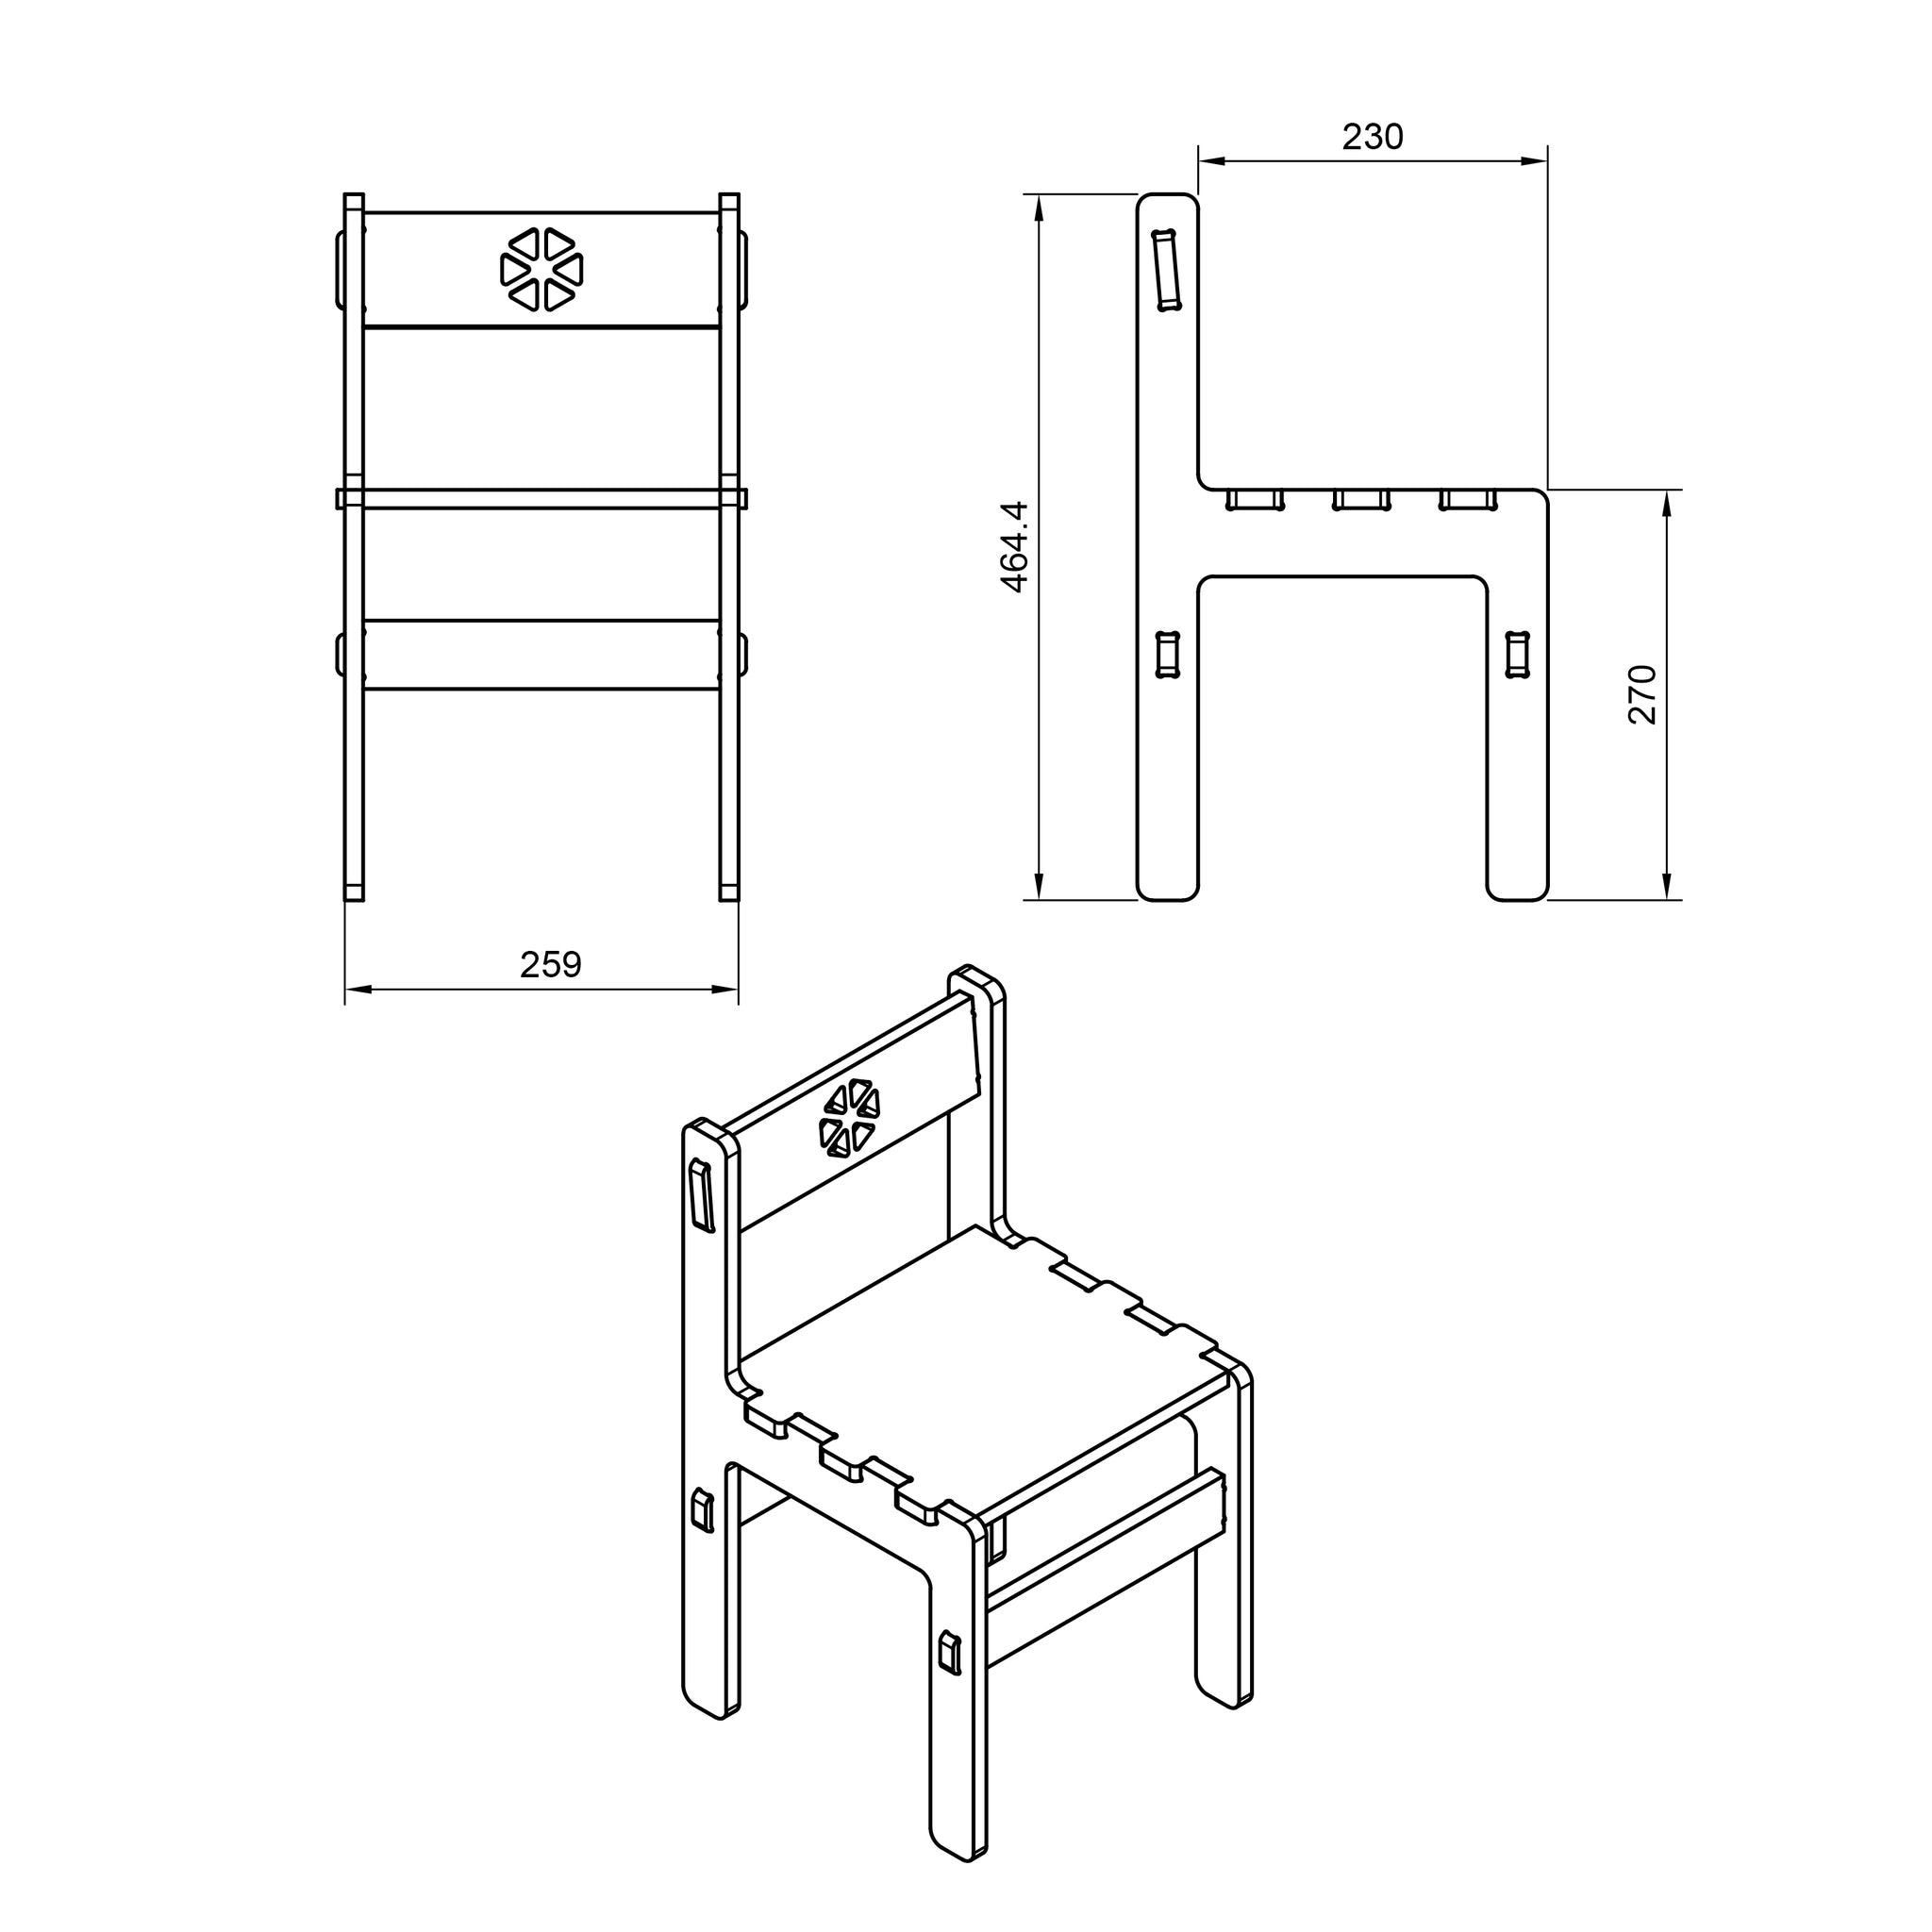 Children's Chair DXF file